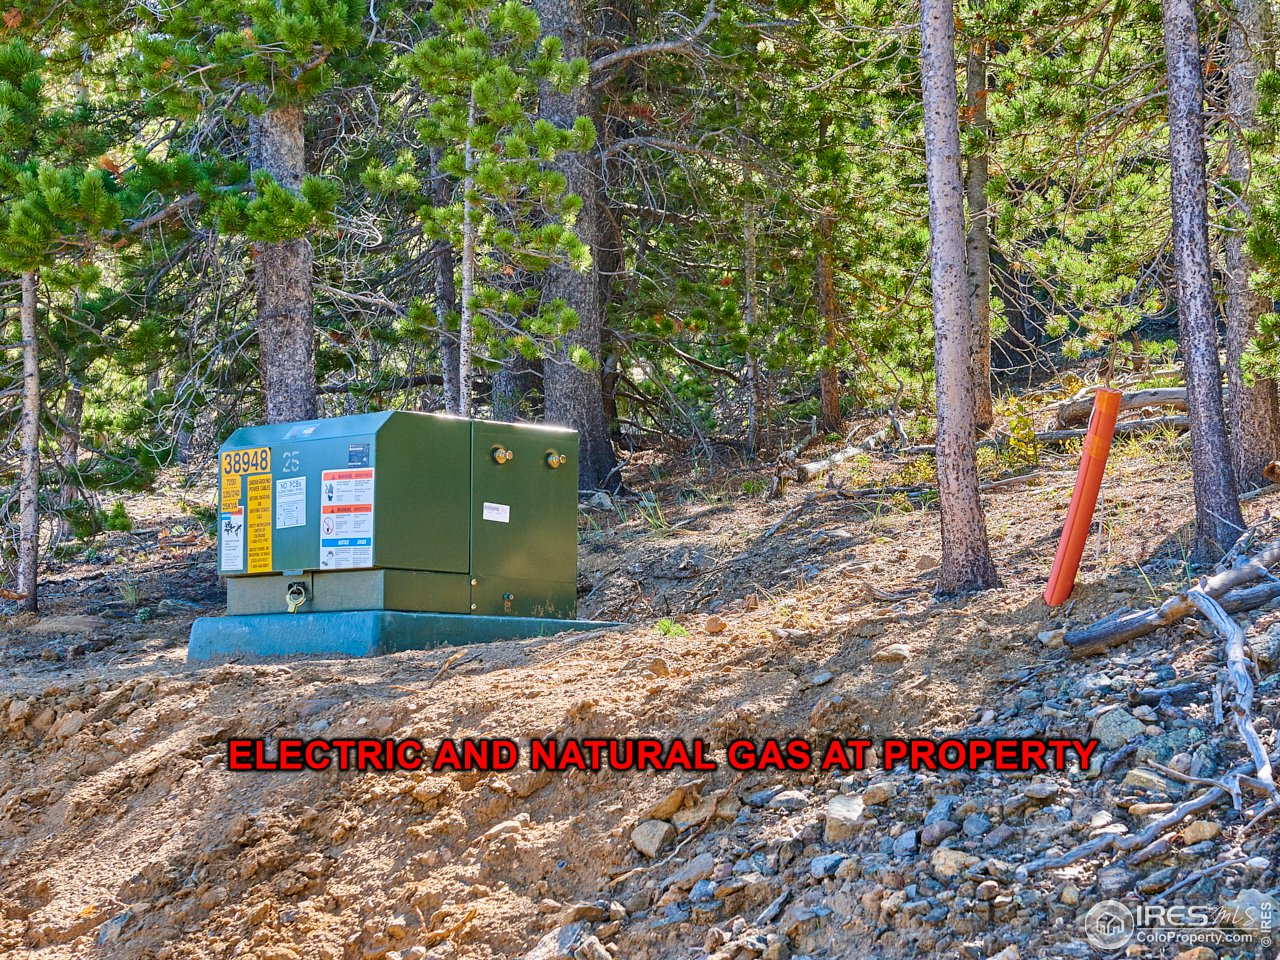 Electric & Natural Gas within 100' of Property